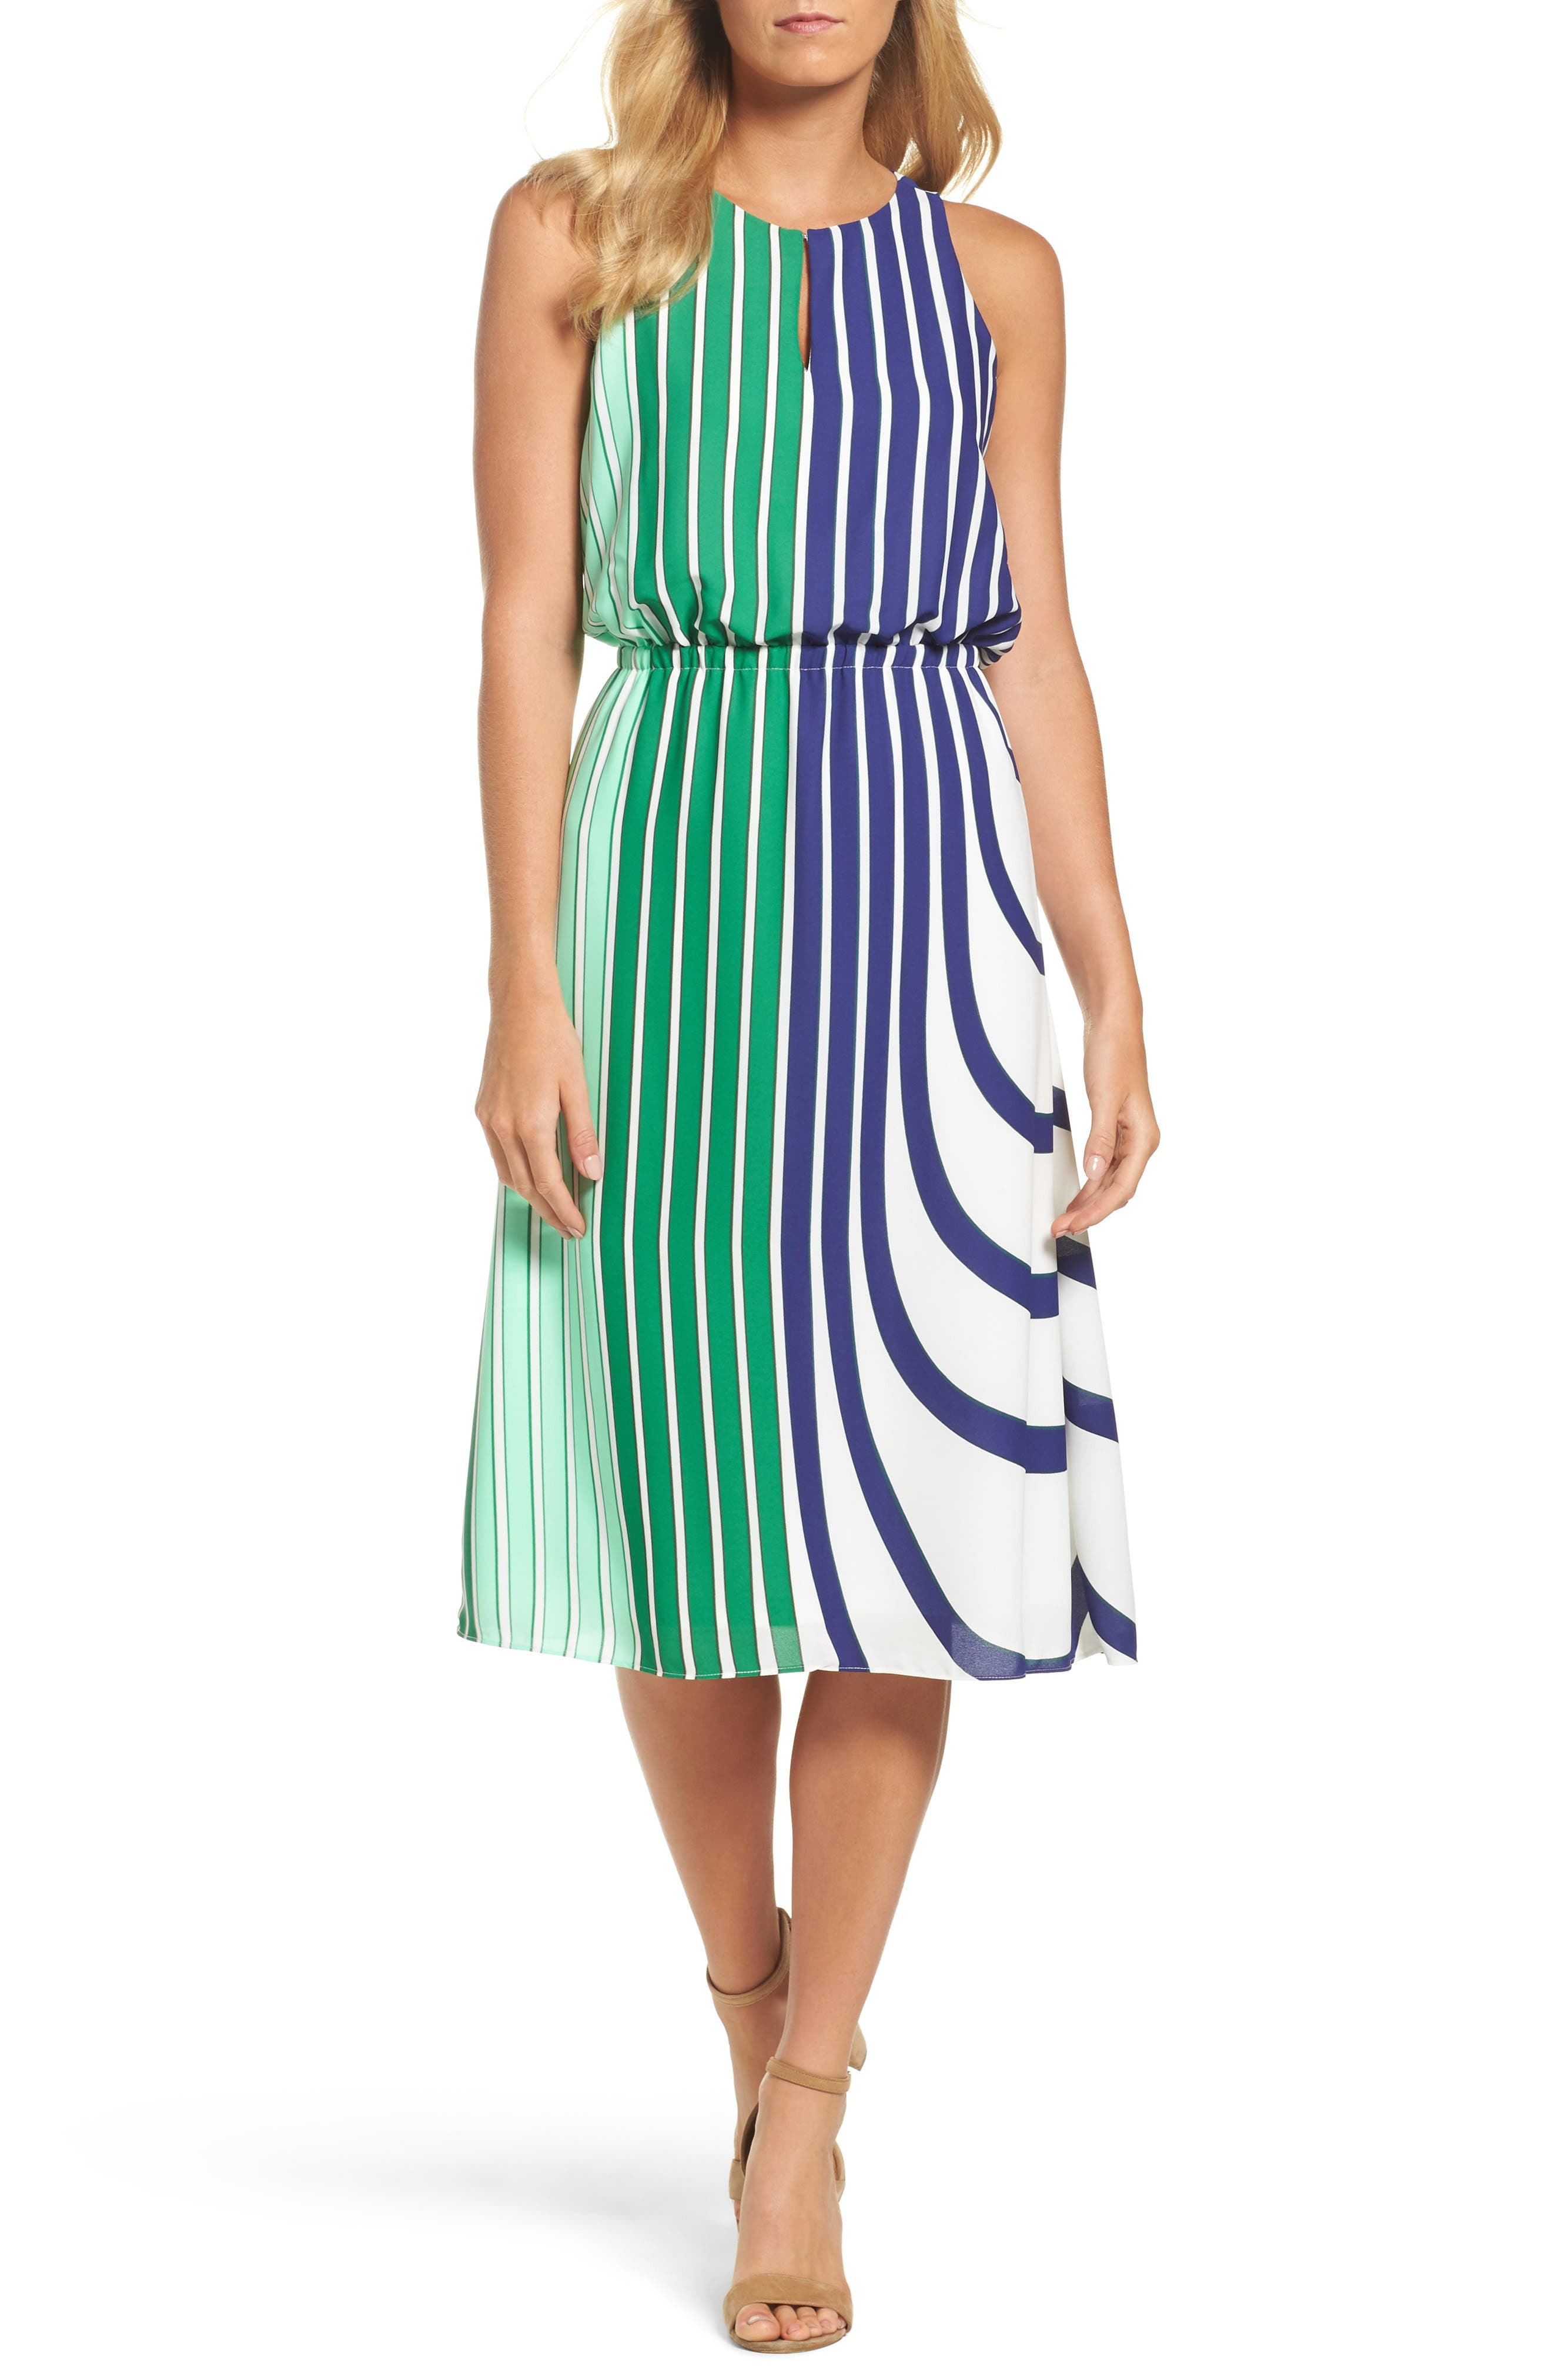 Adrianna Papell Blouson Midi Dress